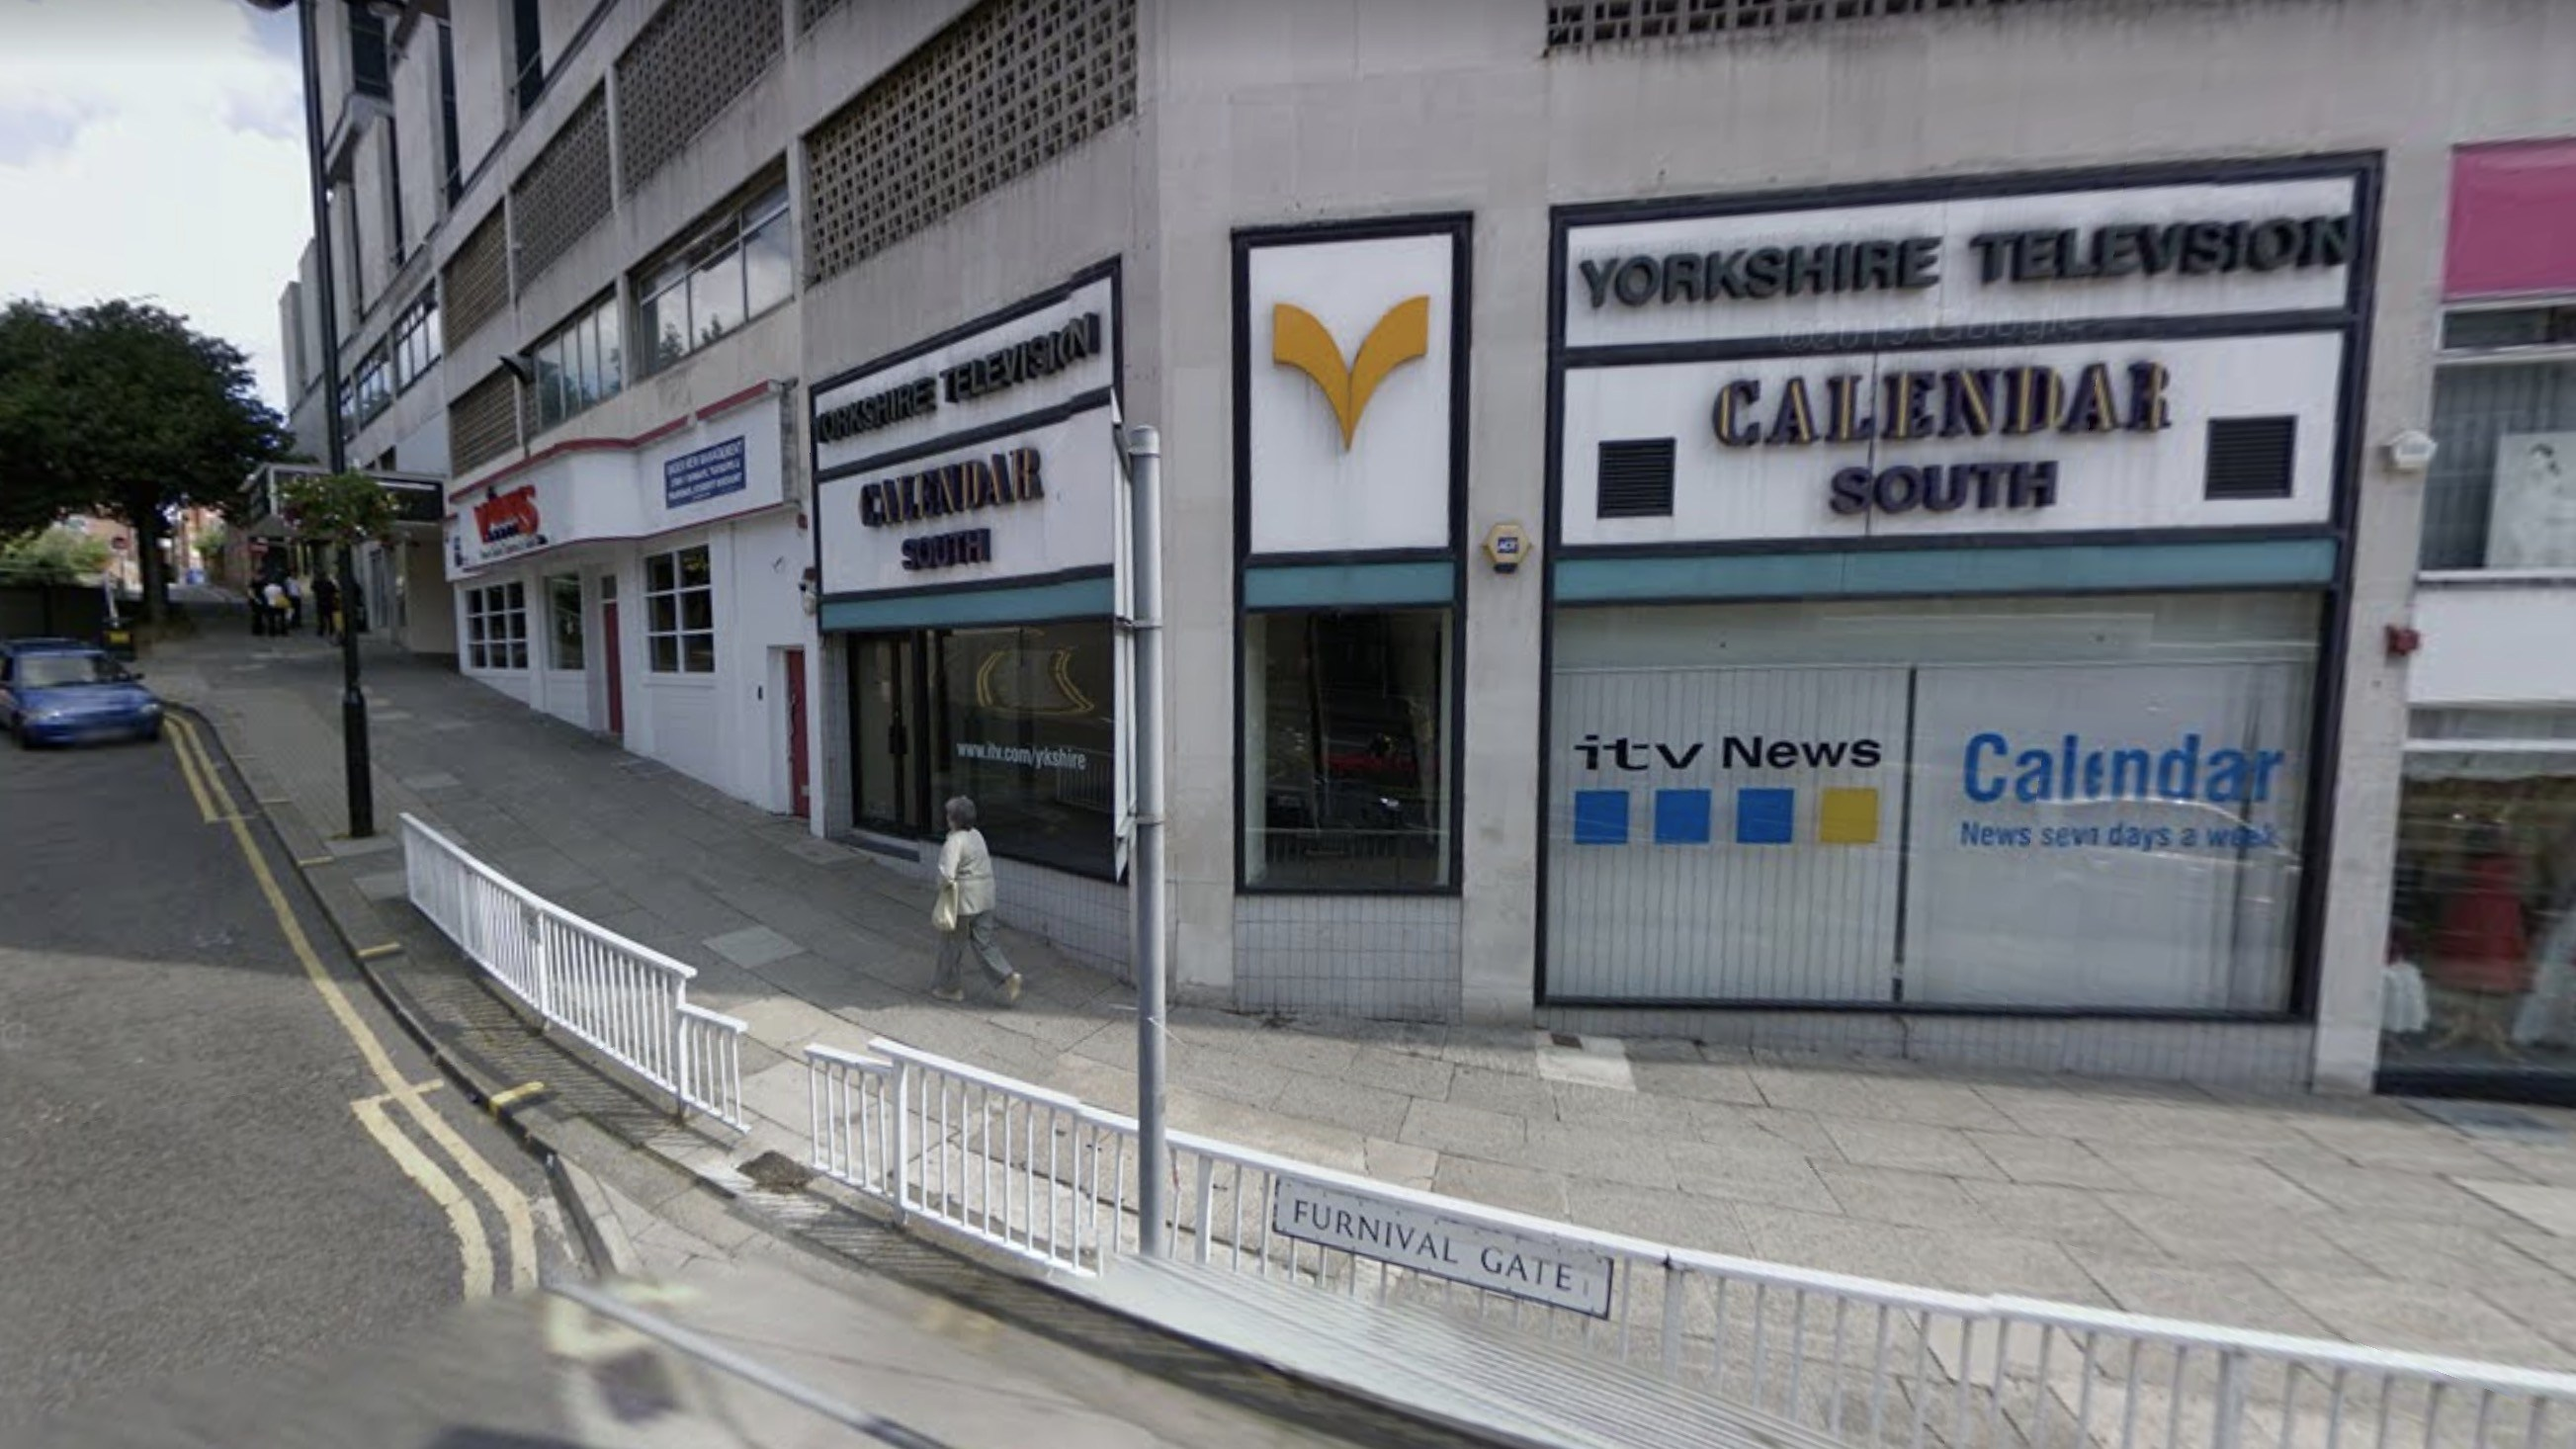 Yorkshire TV Calendar Studio on Furnival Gate